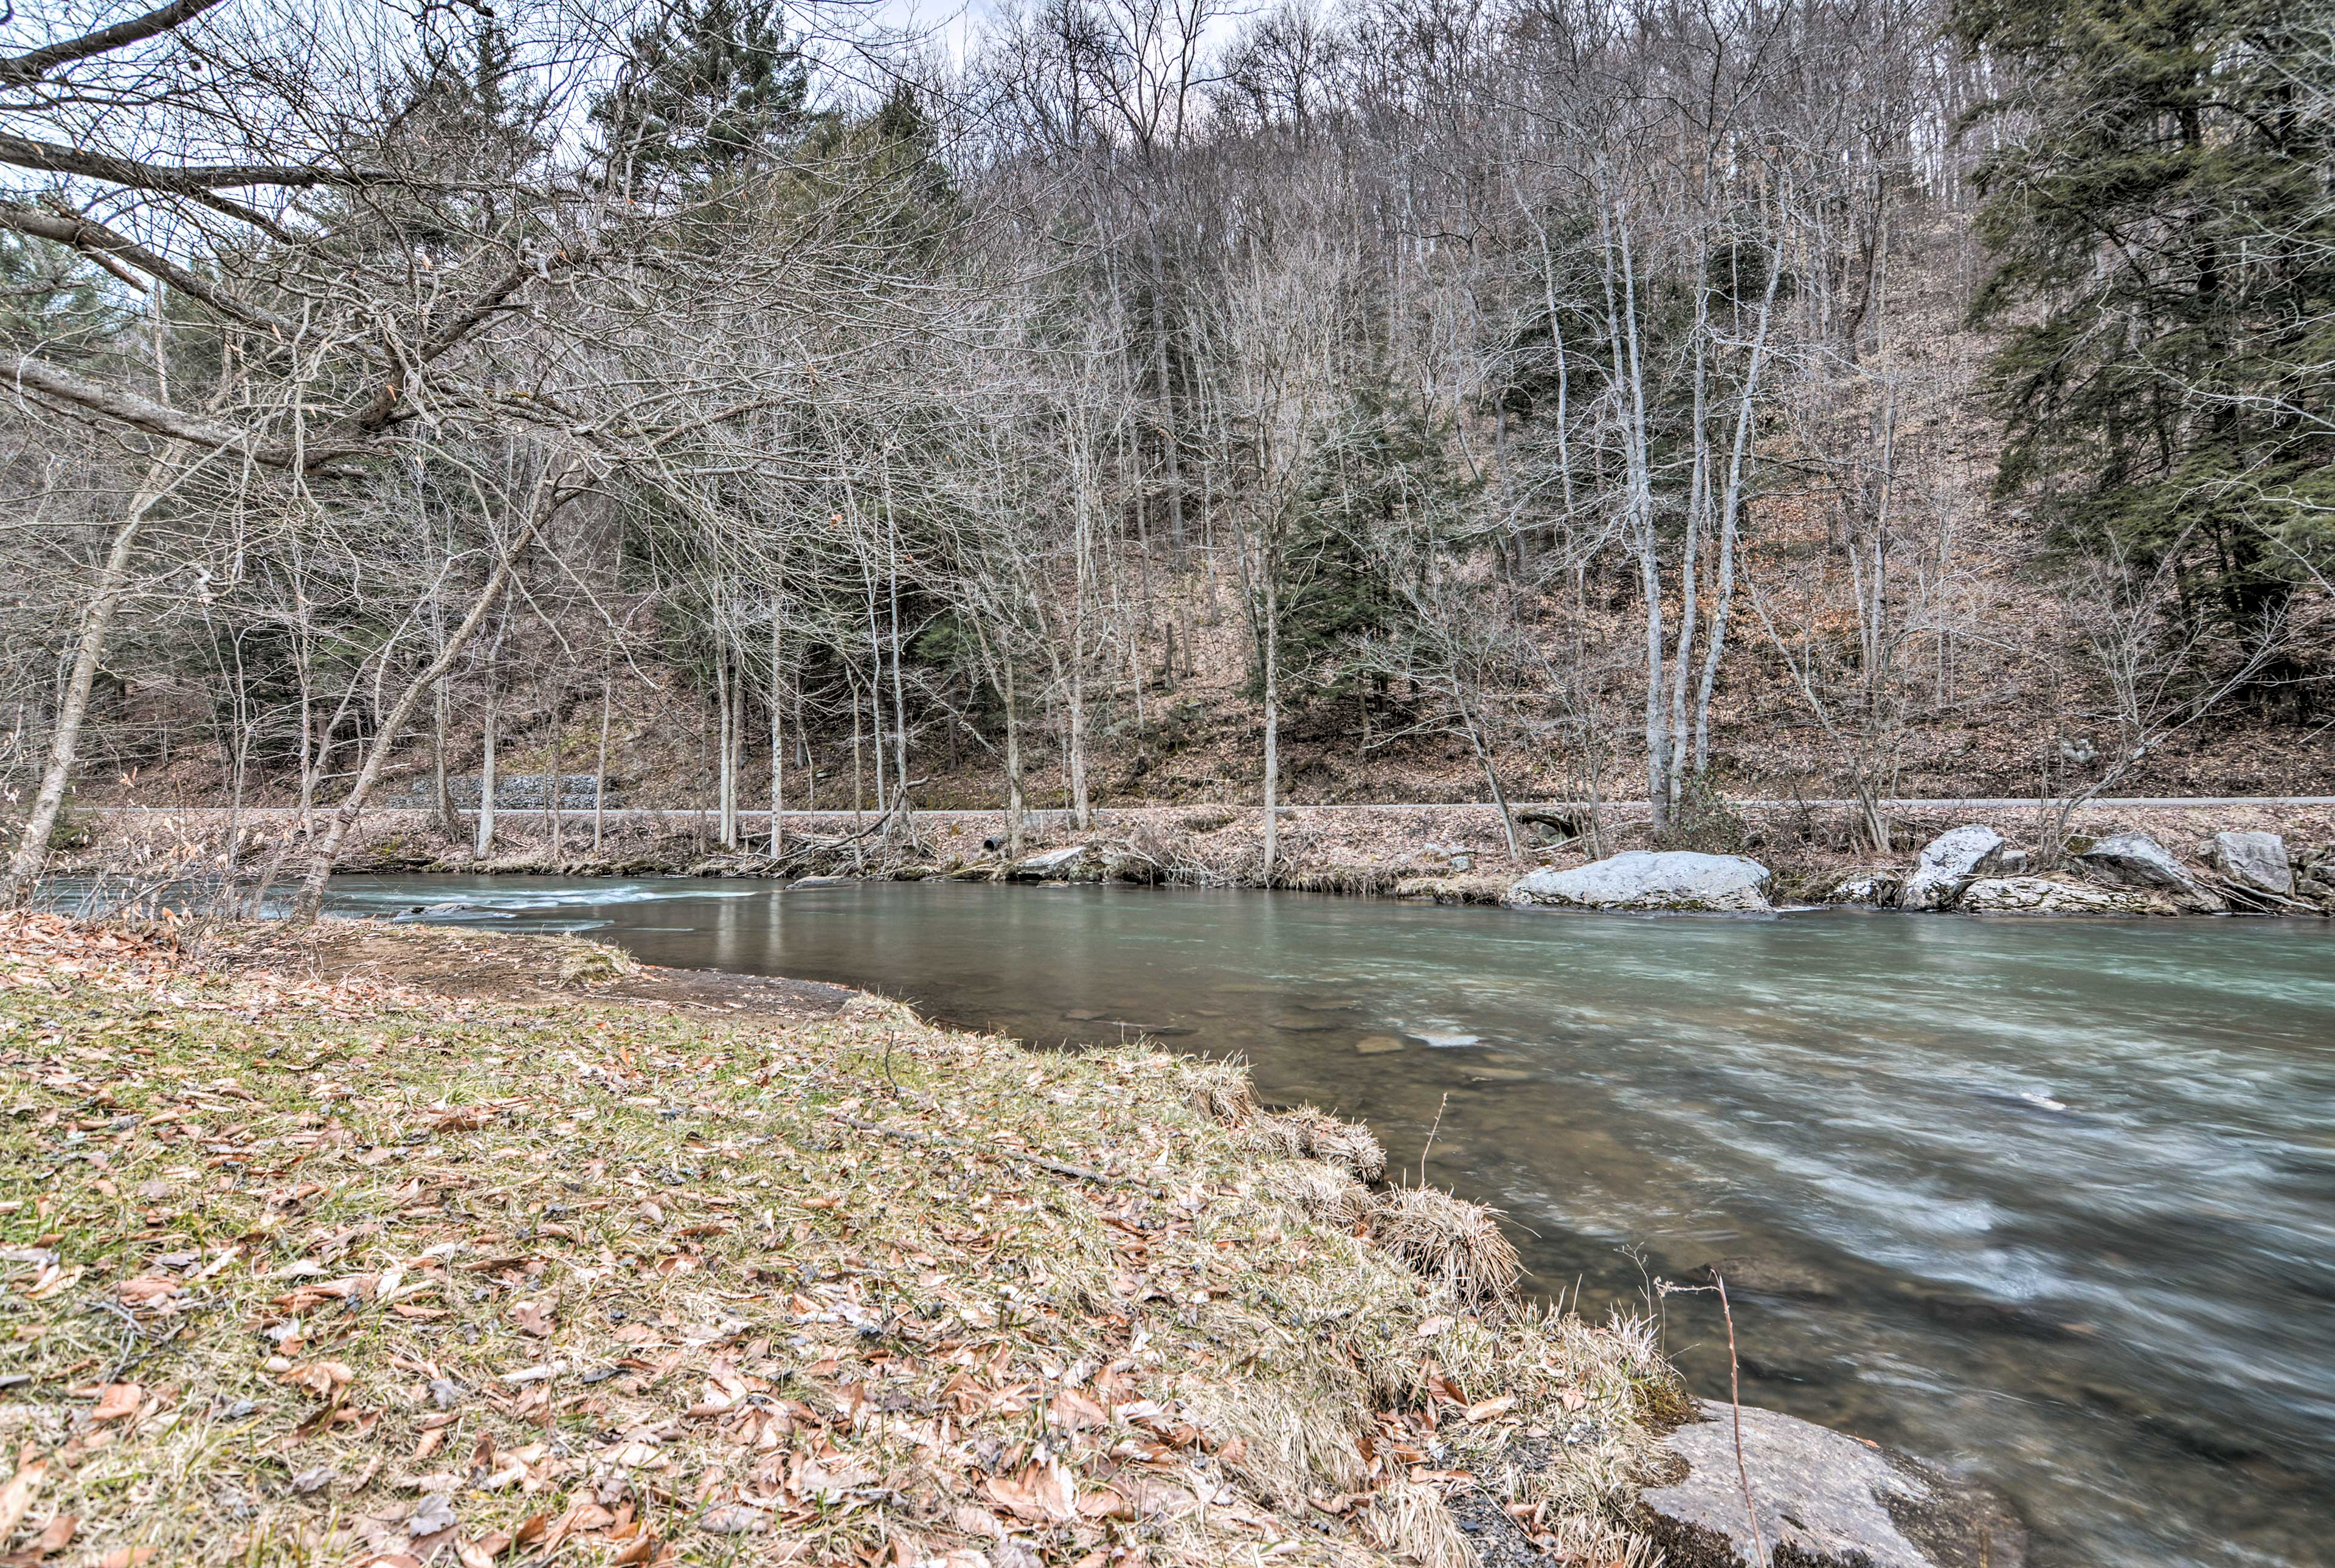 The Clarion River offers some of the best trout fishing in the state!